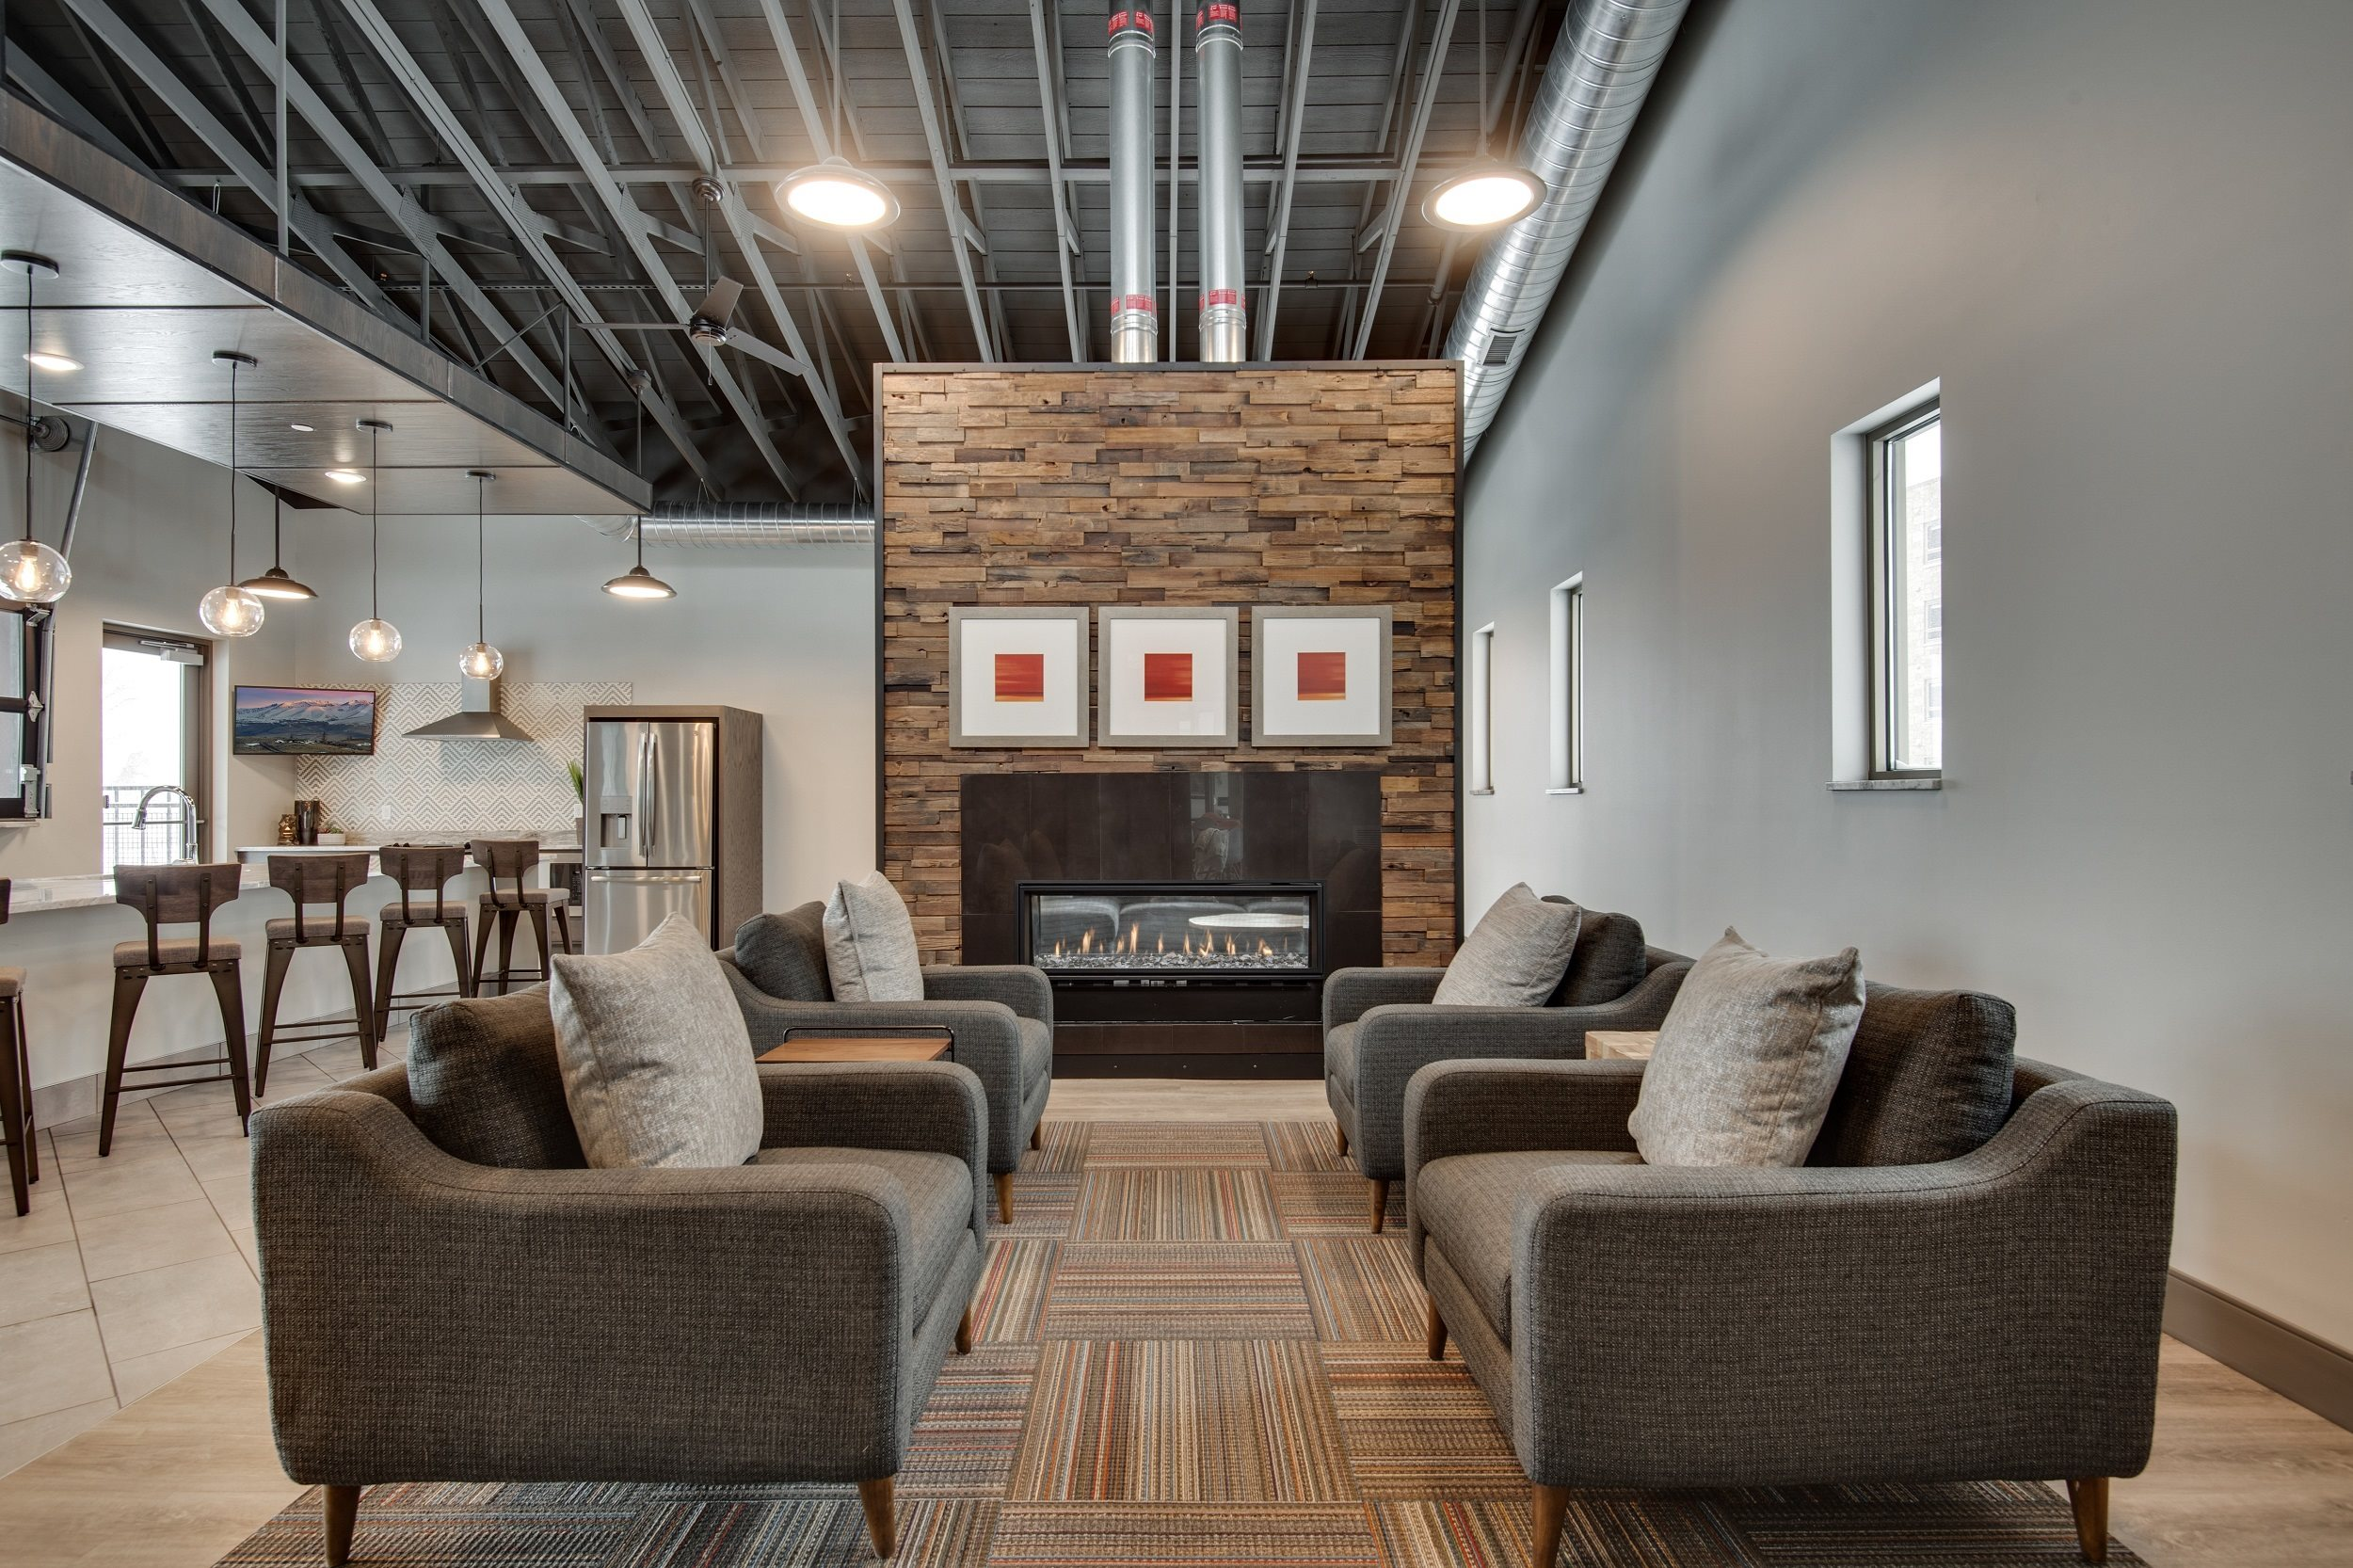 Community space with co-working areas at TRIO @ southbridge, Shakopee